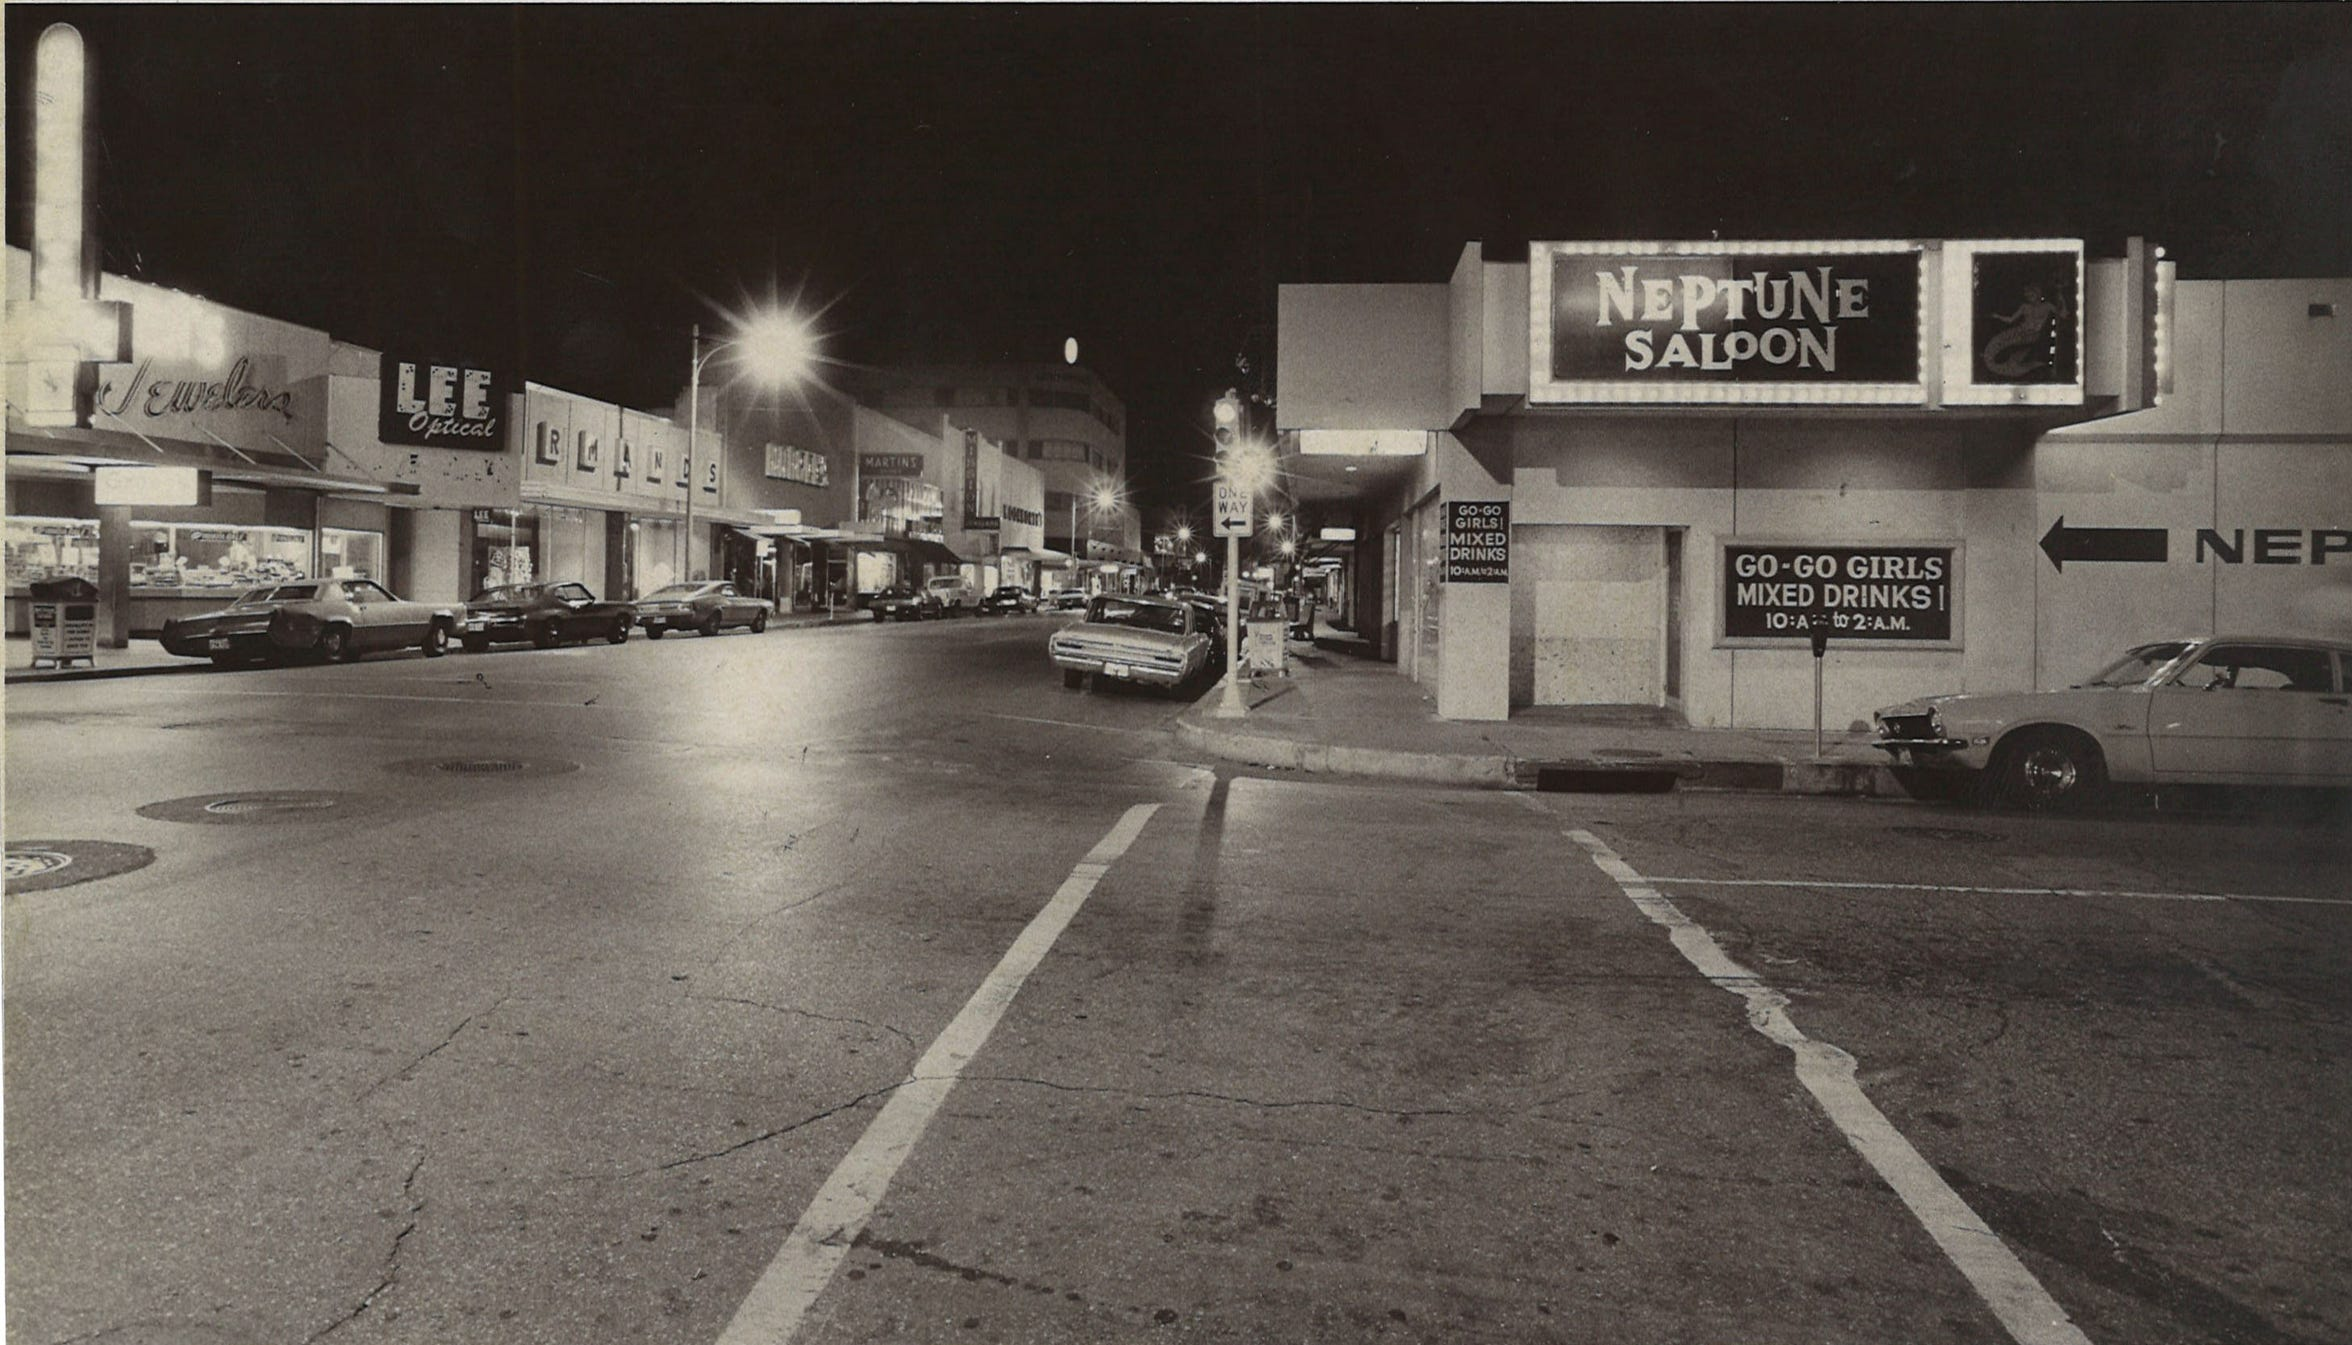 The intersection of Chaparral and William street in June 1975 in downtown Corpus Christi. Neptune Saloon, Green's Jewelers and Lee Optical are among the store visible in the shot.